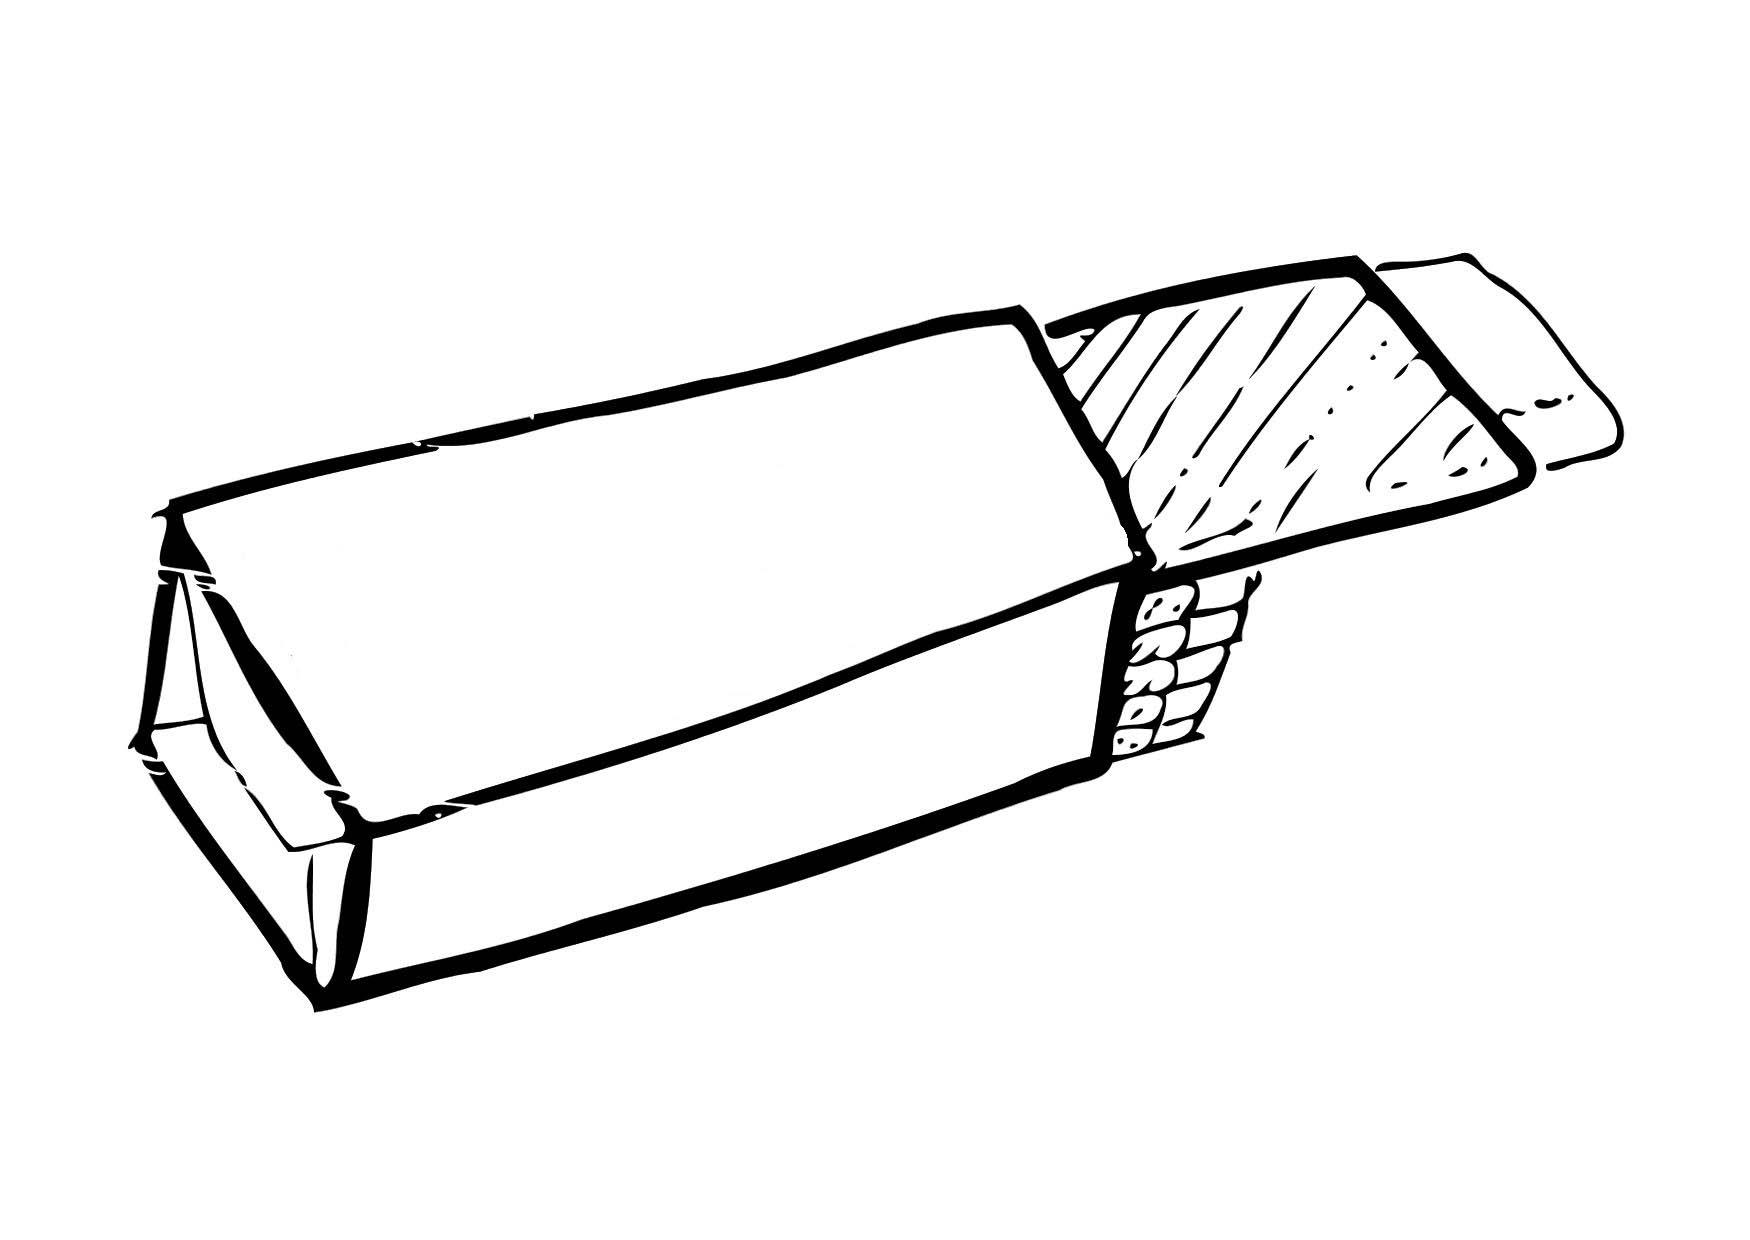 Coloring page chewing gum img 12307 for Gum coloring pages